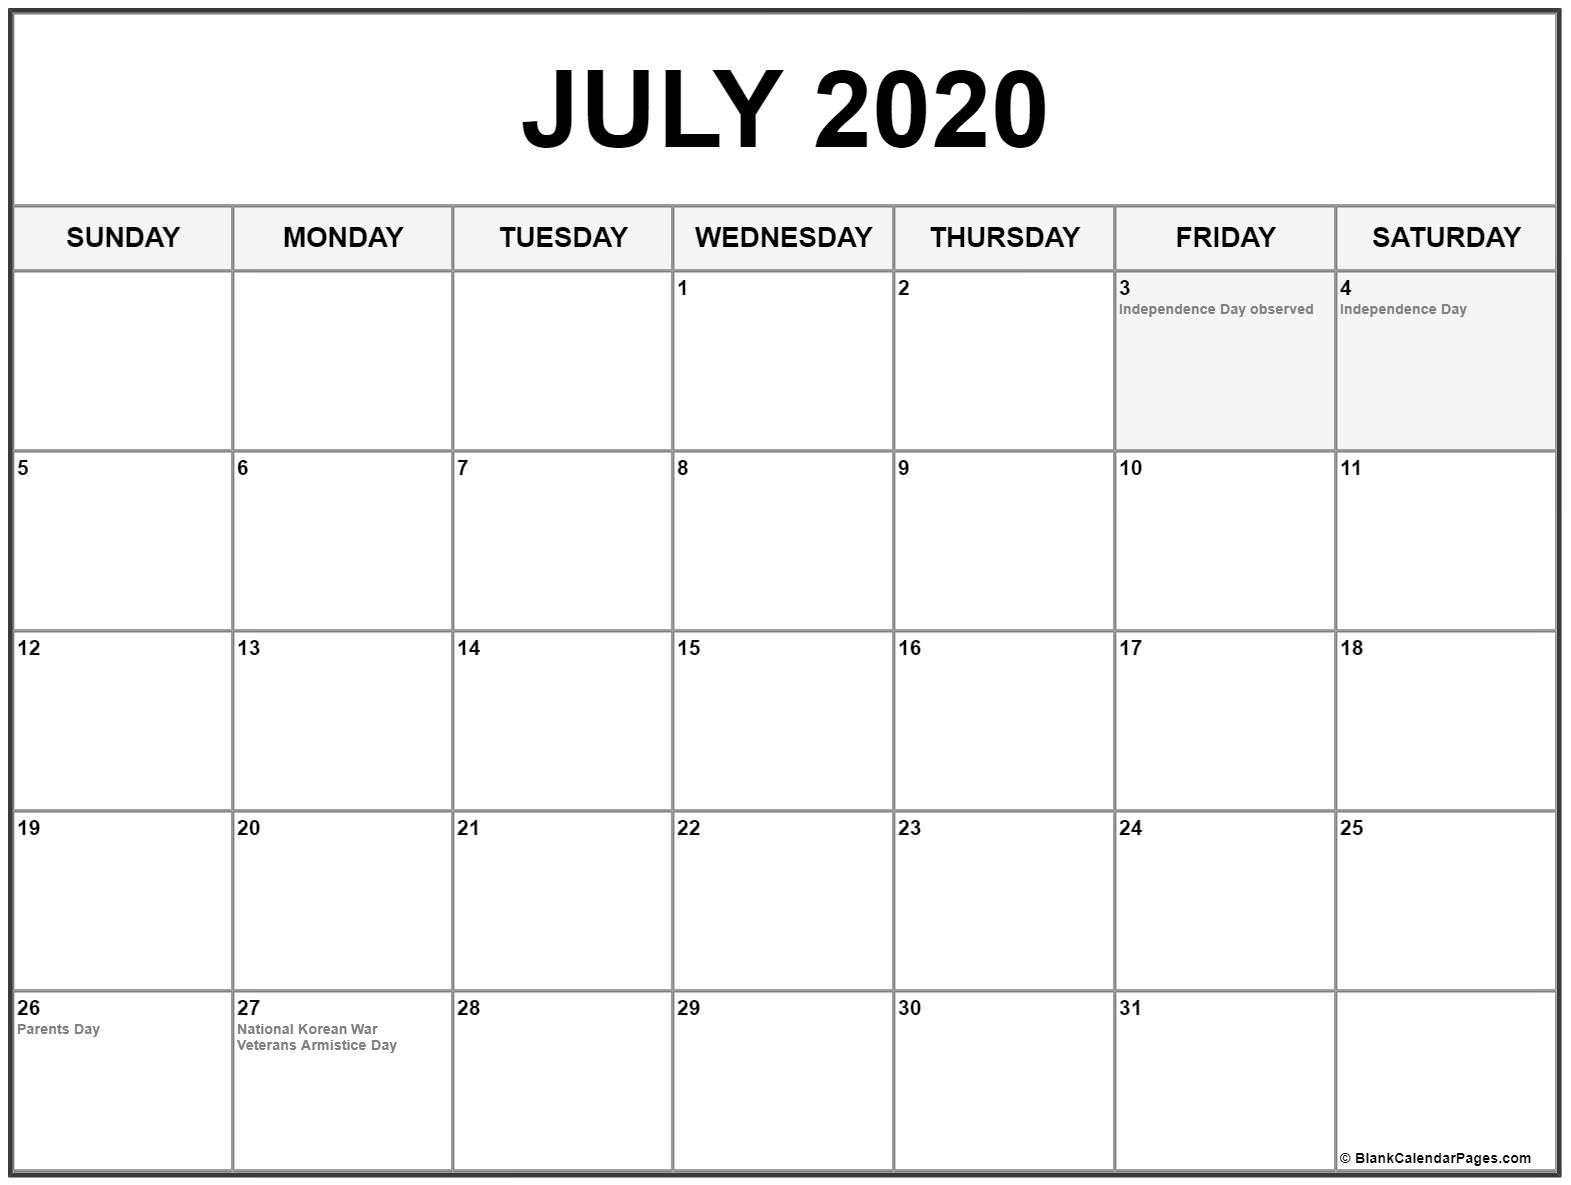 Collection Of July 2020 Calendars With Holidays